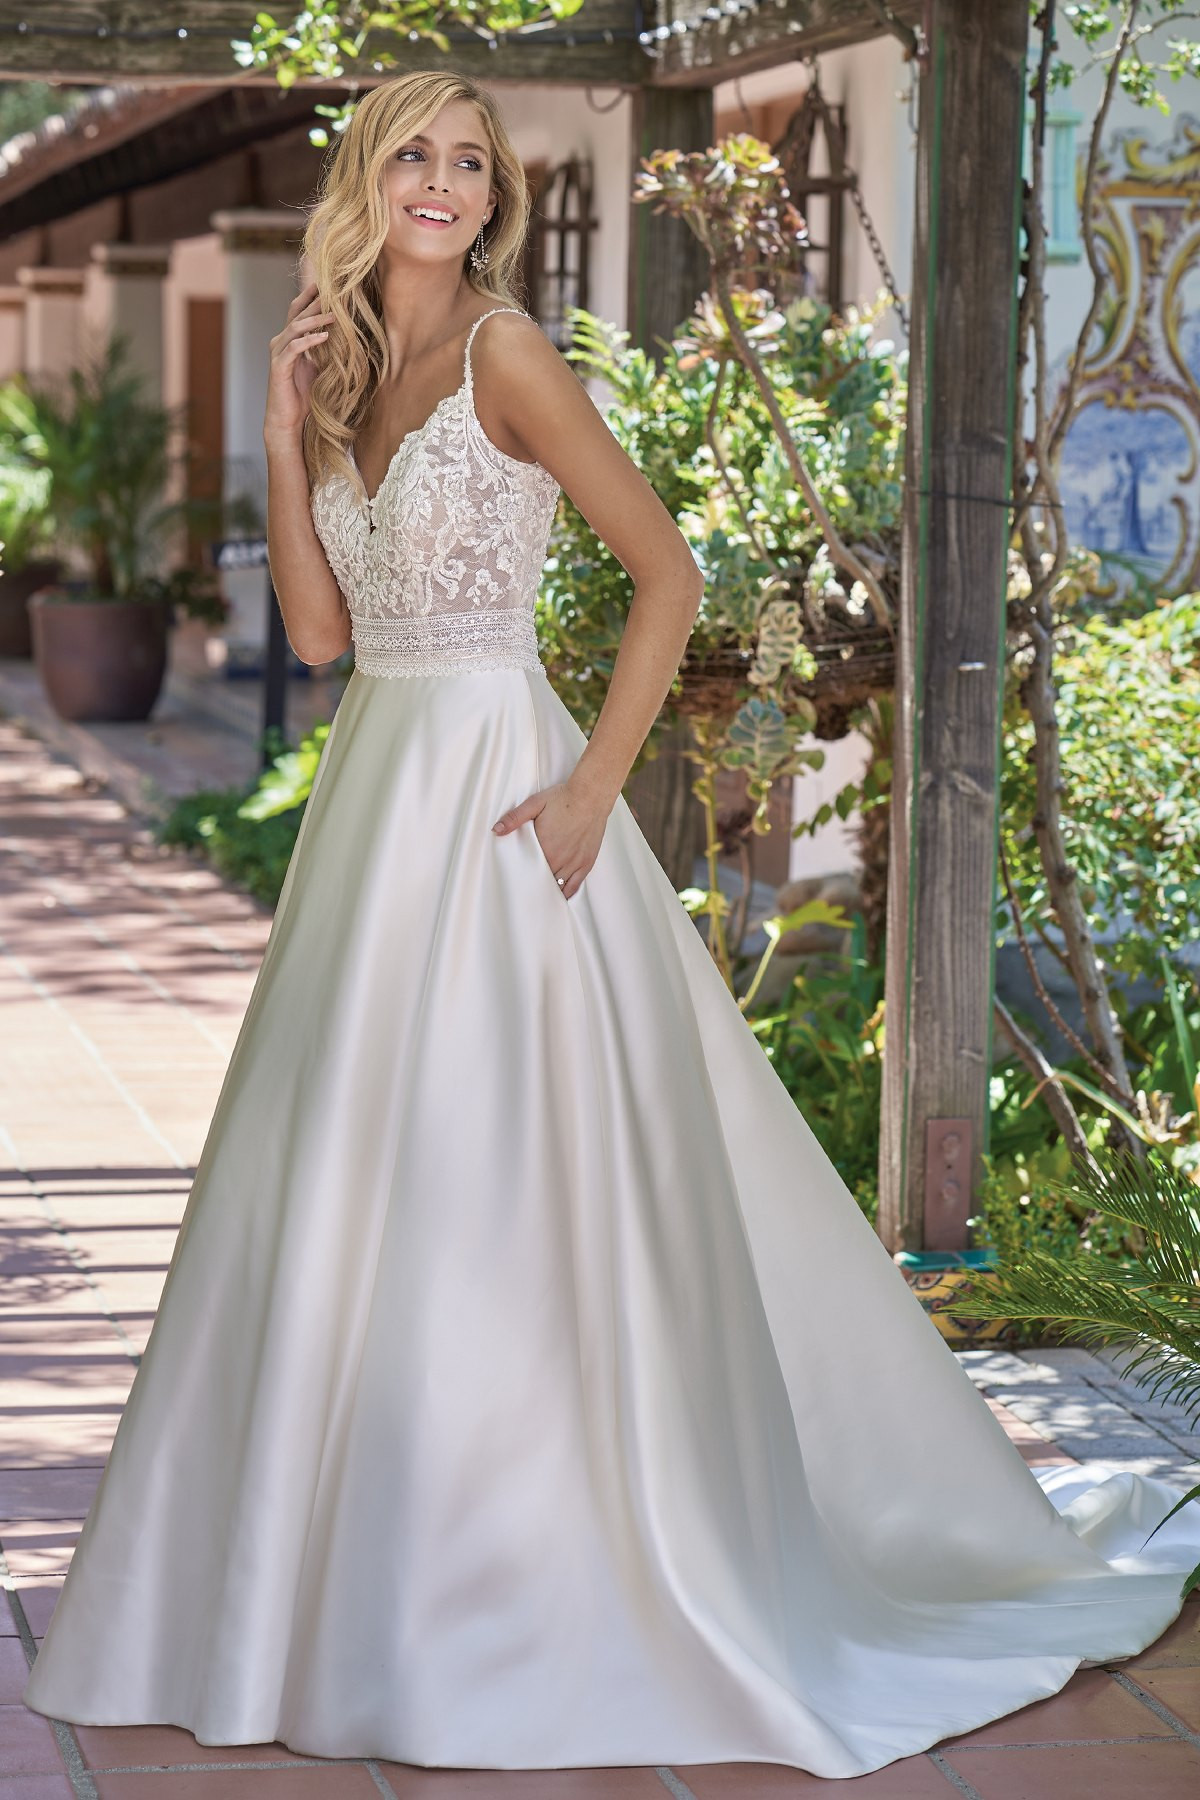 Lace Wedding Gowns  F Romantic Italian Satin & Embroidered Lace Wedding